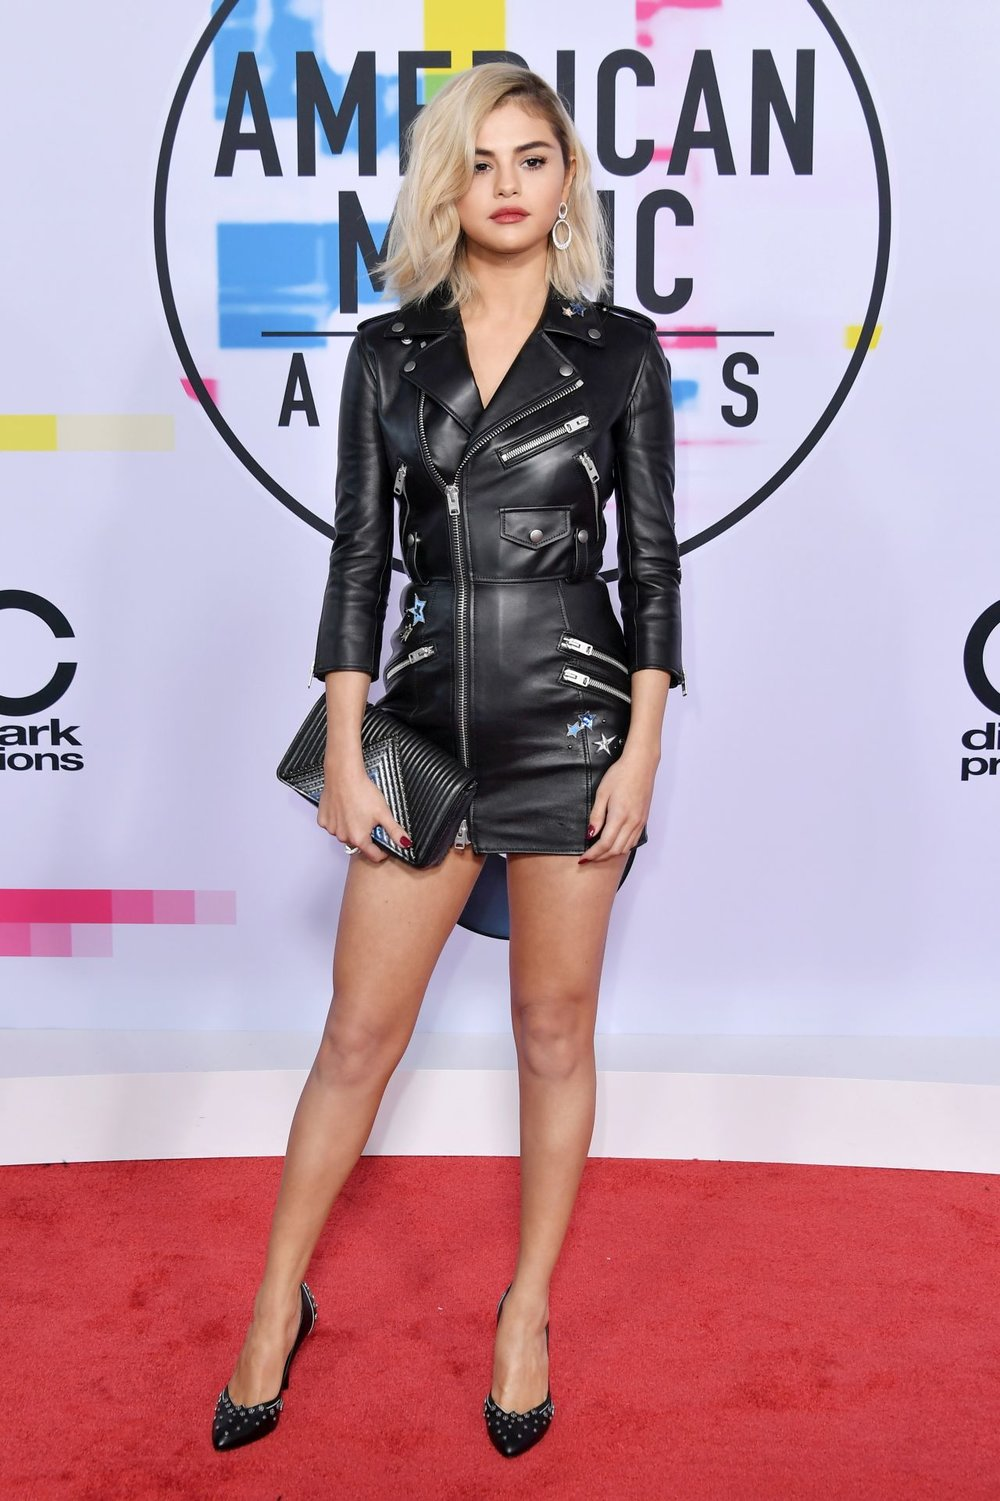 Hardcore Selena - Selena Gomez made her return in blonde last night donning a punk biker look and we're in love.